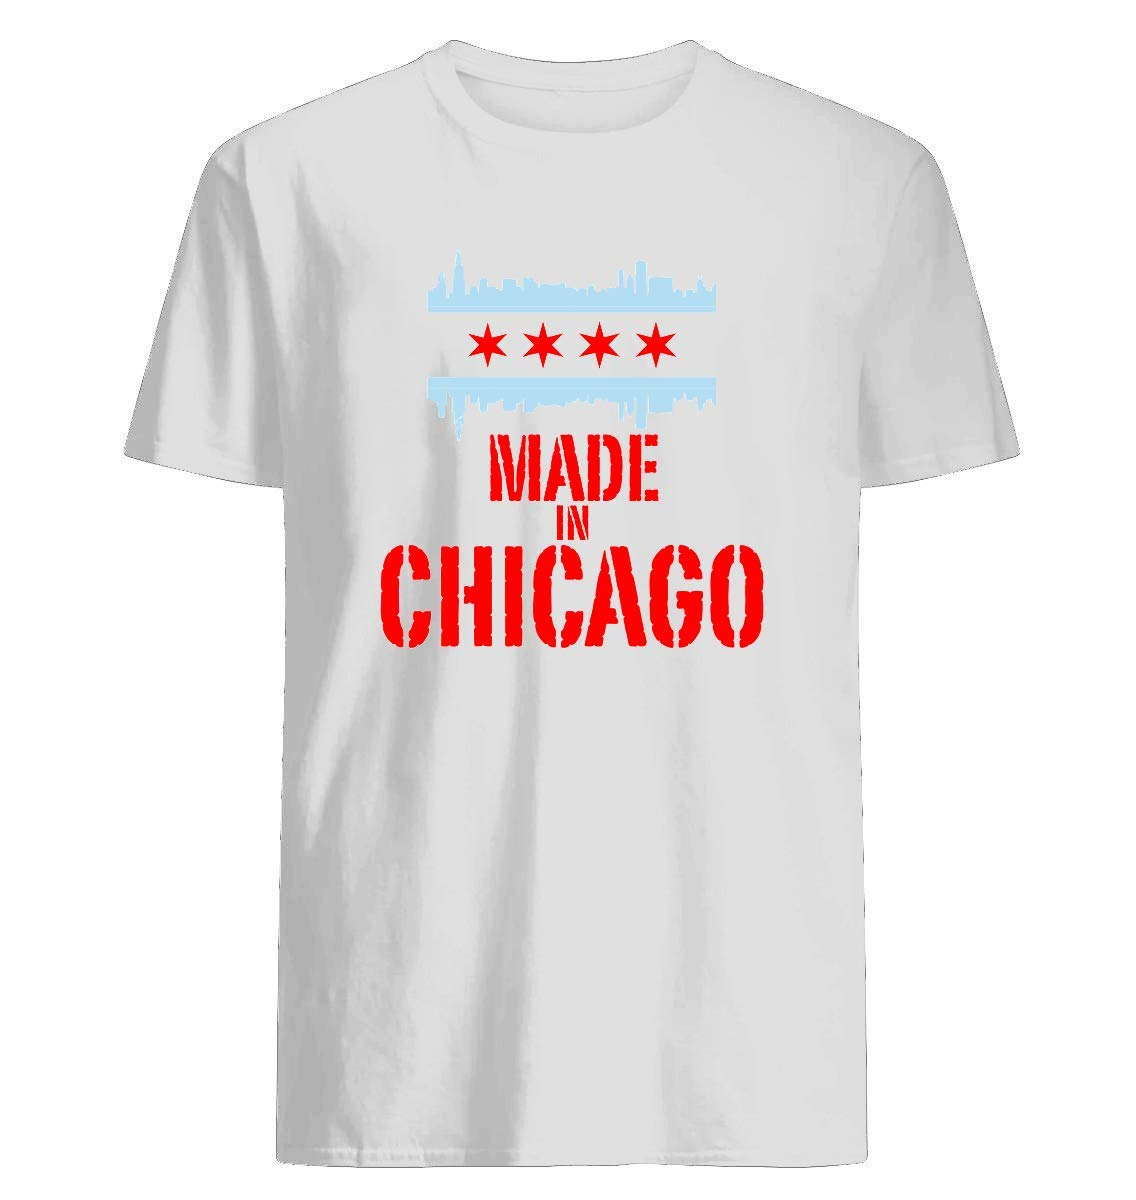 Made In Chicago This Graphic Makes The Best Gift Idea For You Or A Friend Shirts